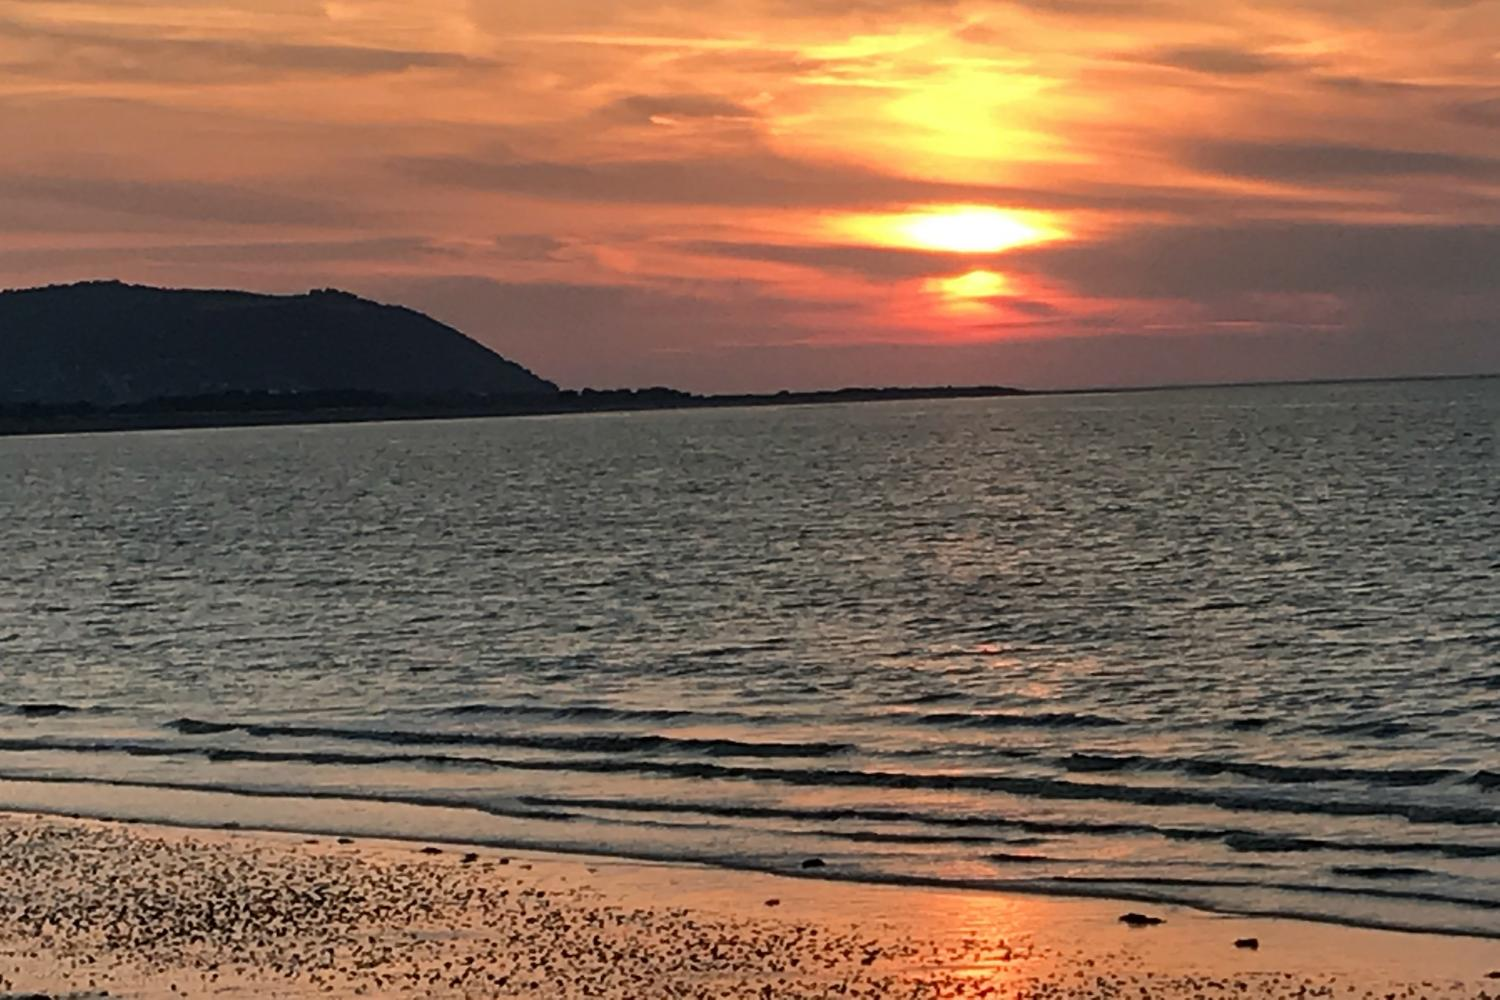 Sunset at nearby Blue Anchor Bay